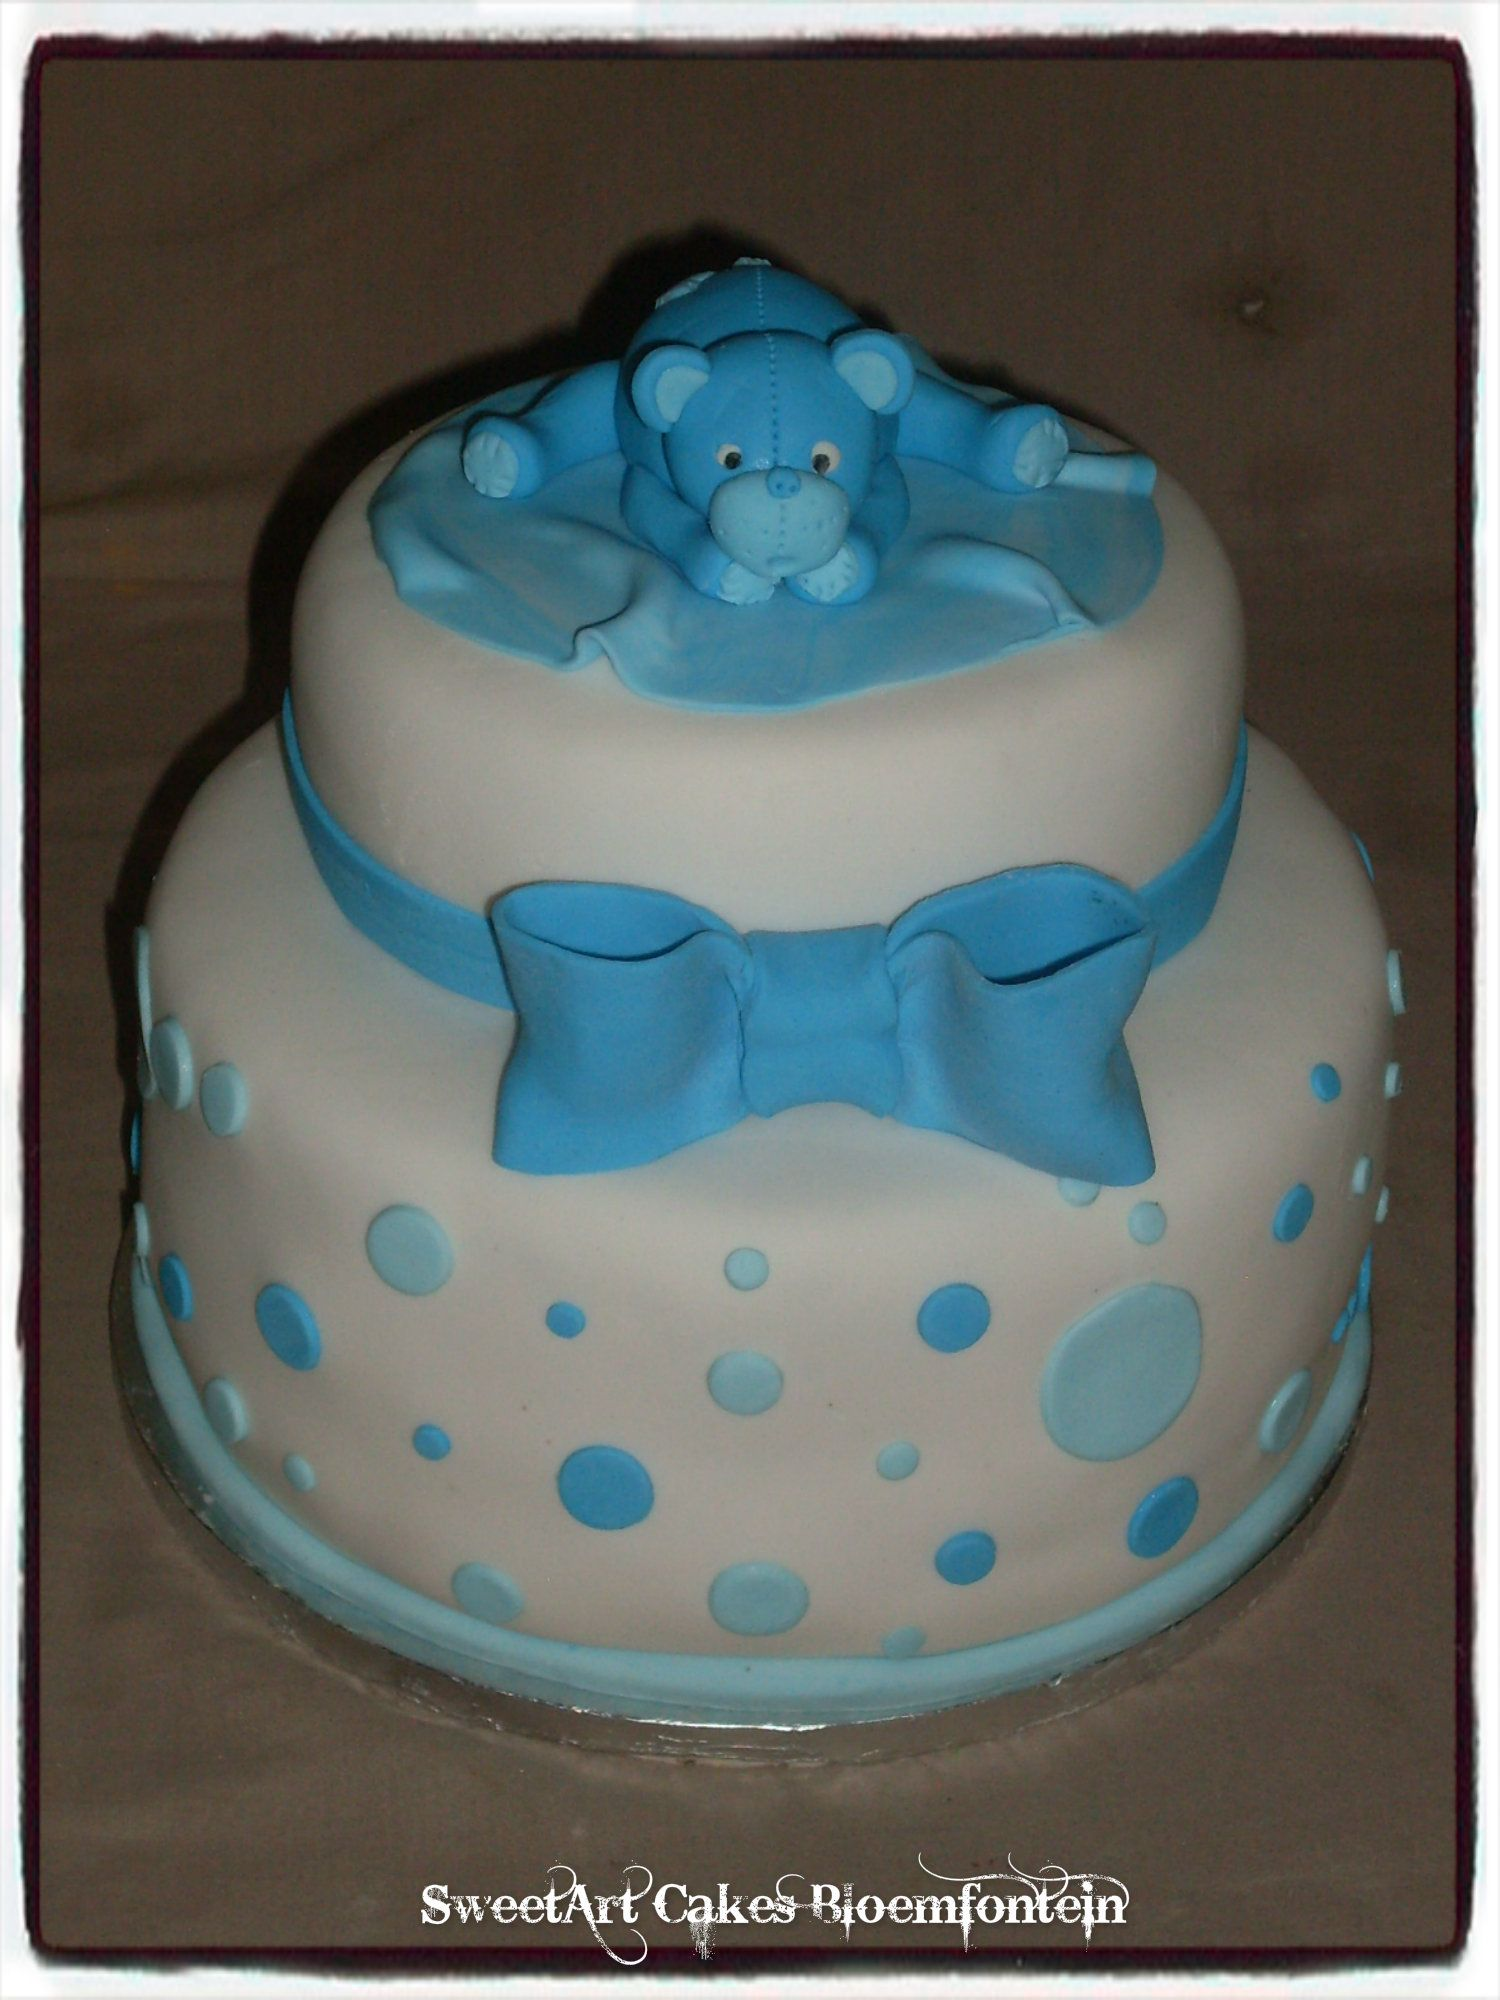 df1112765fec8d TEDDY BEAR BABYSHOWER CAKE Visit our website  Sweetartbfn.wix.com home For  more information   orders email SweetArtbfn gmail.com or call 0712127786.